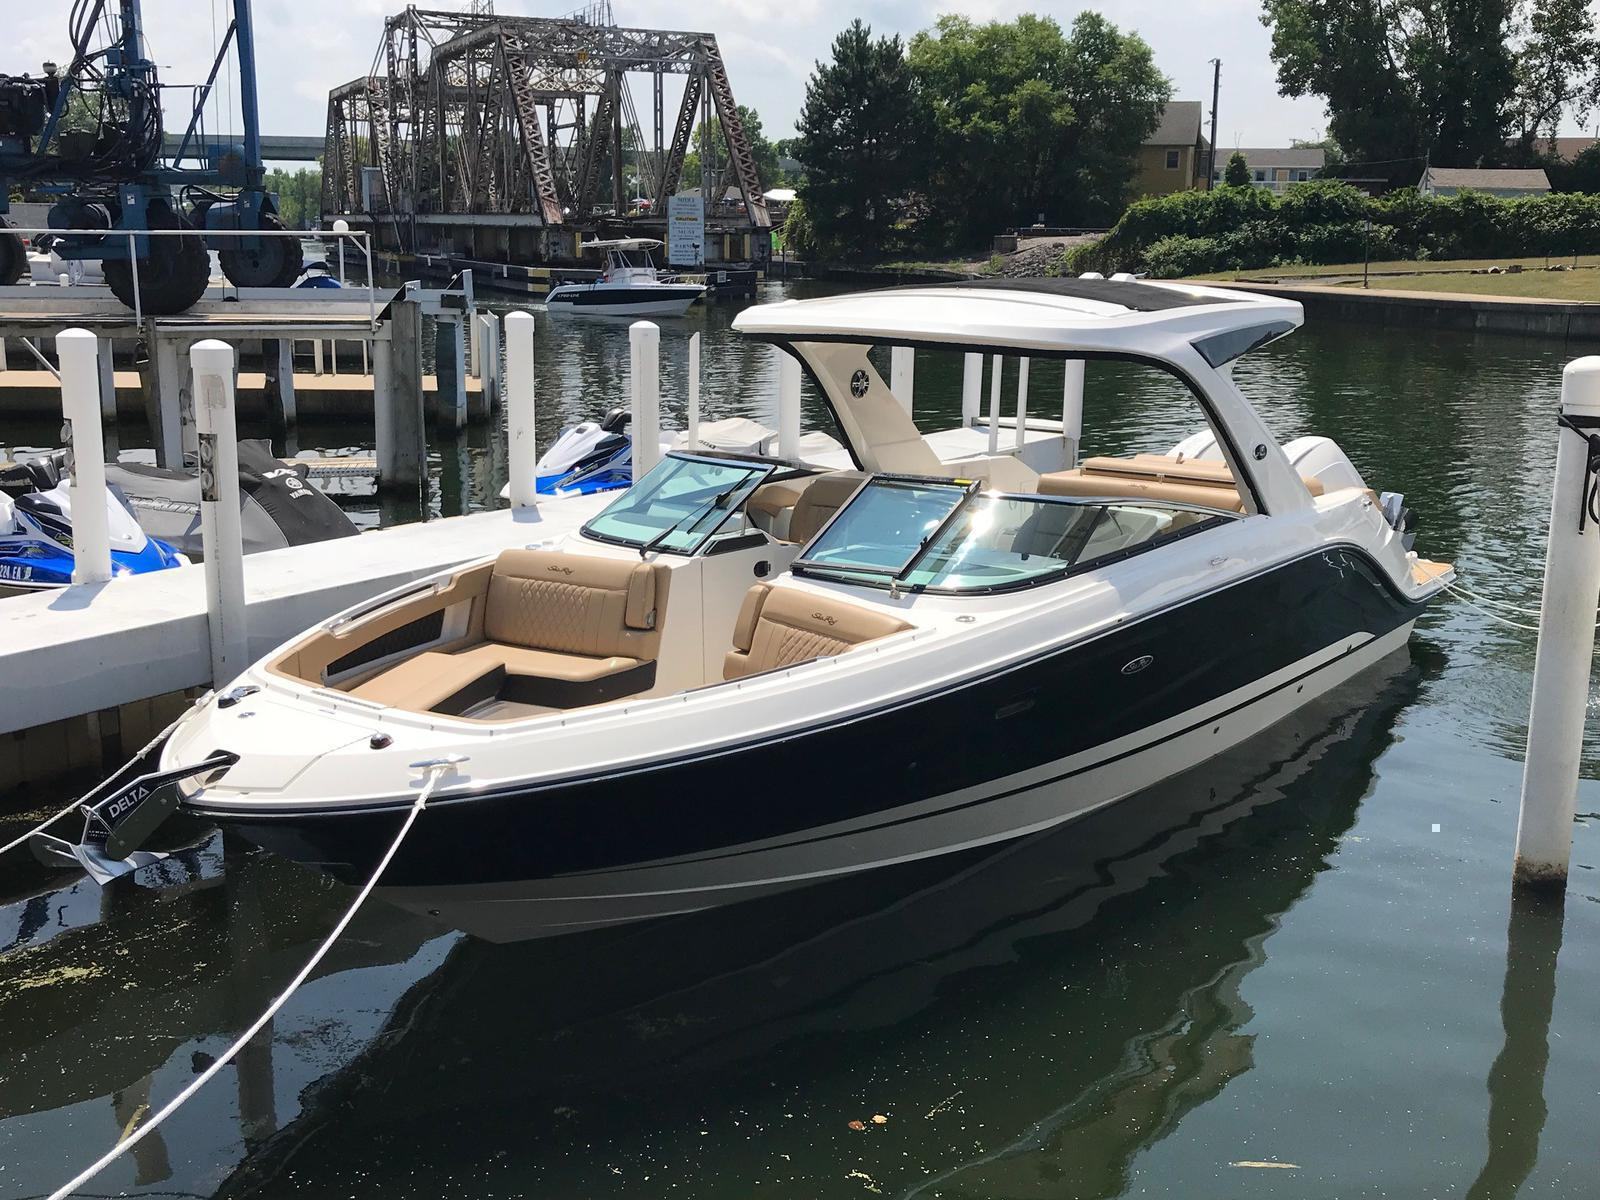 2019 Sea Ray boat for sale, model of the boat is SLX 310 & Image # 2 of 5